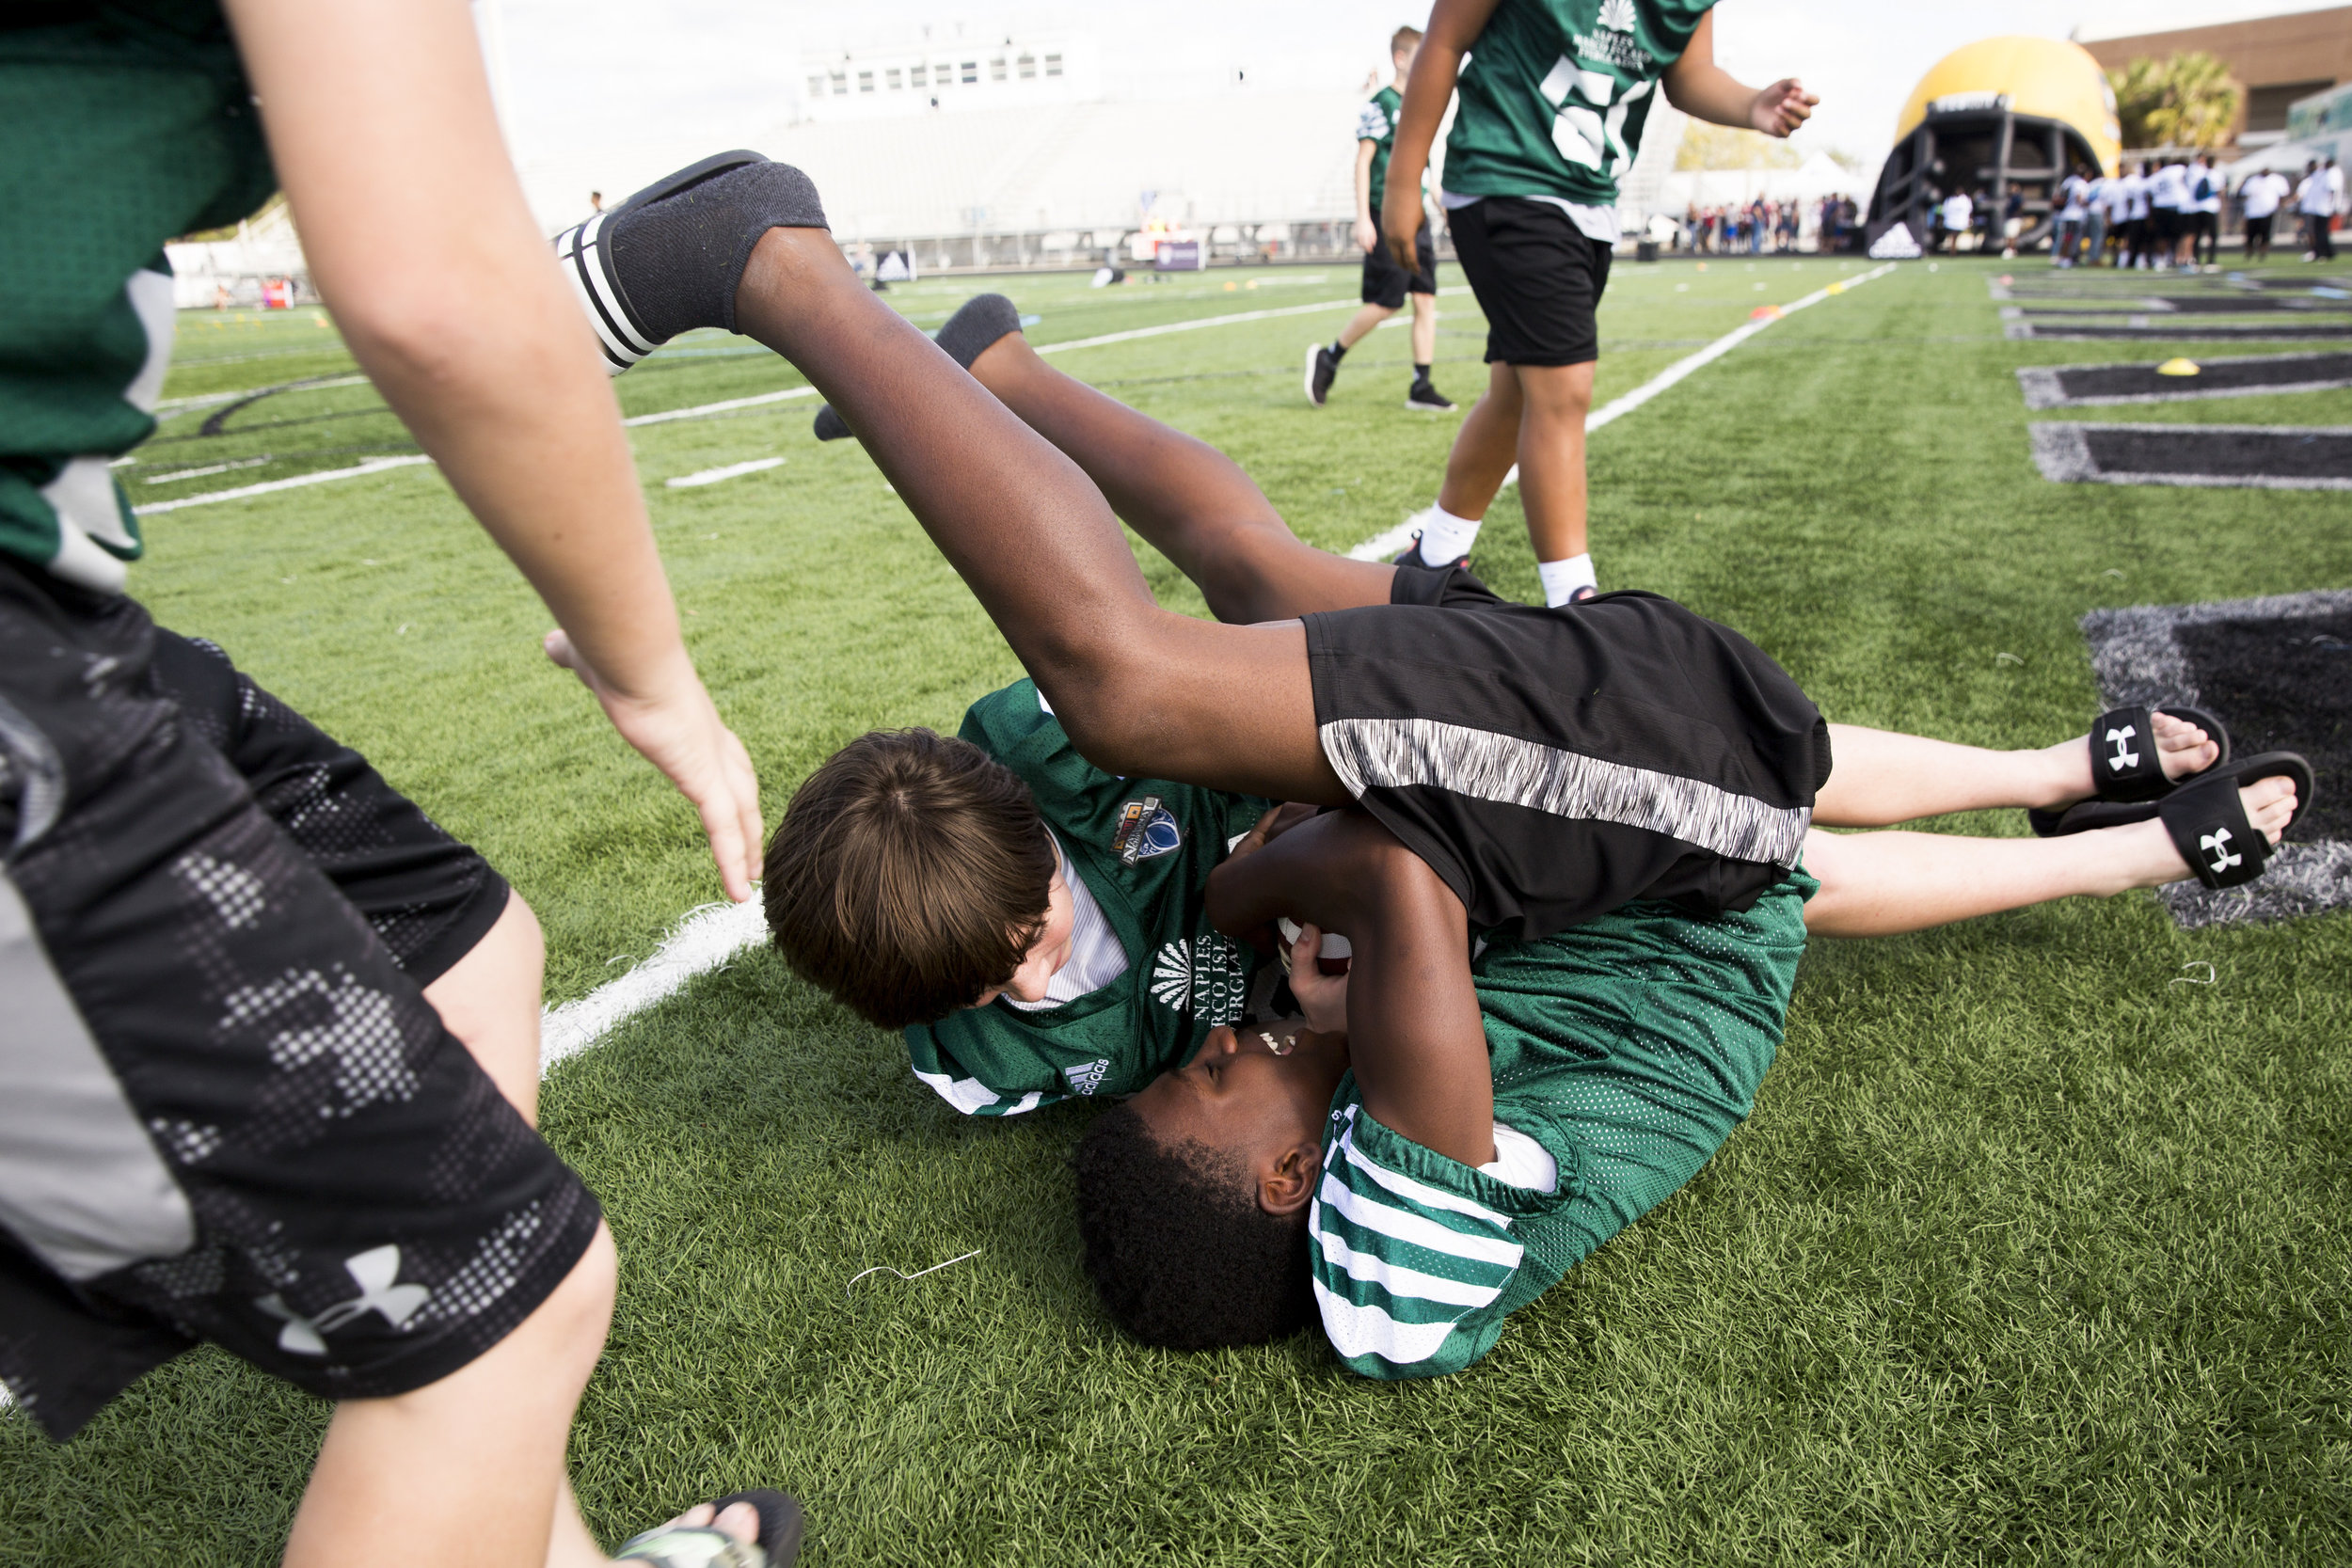 James Johnson, 12, does a somersault while wrestling for the ball with Dane Aaberg, 12, both with the 6th Grade team from Dallas, Texas as middle-school football players from across the country showed up for registration and a pep rally to kick off the FBU National Championships at Gulf Coast High School Sunday, Dec. 17, 2017 in Naples, Fla.